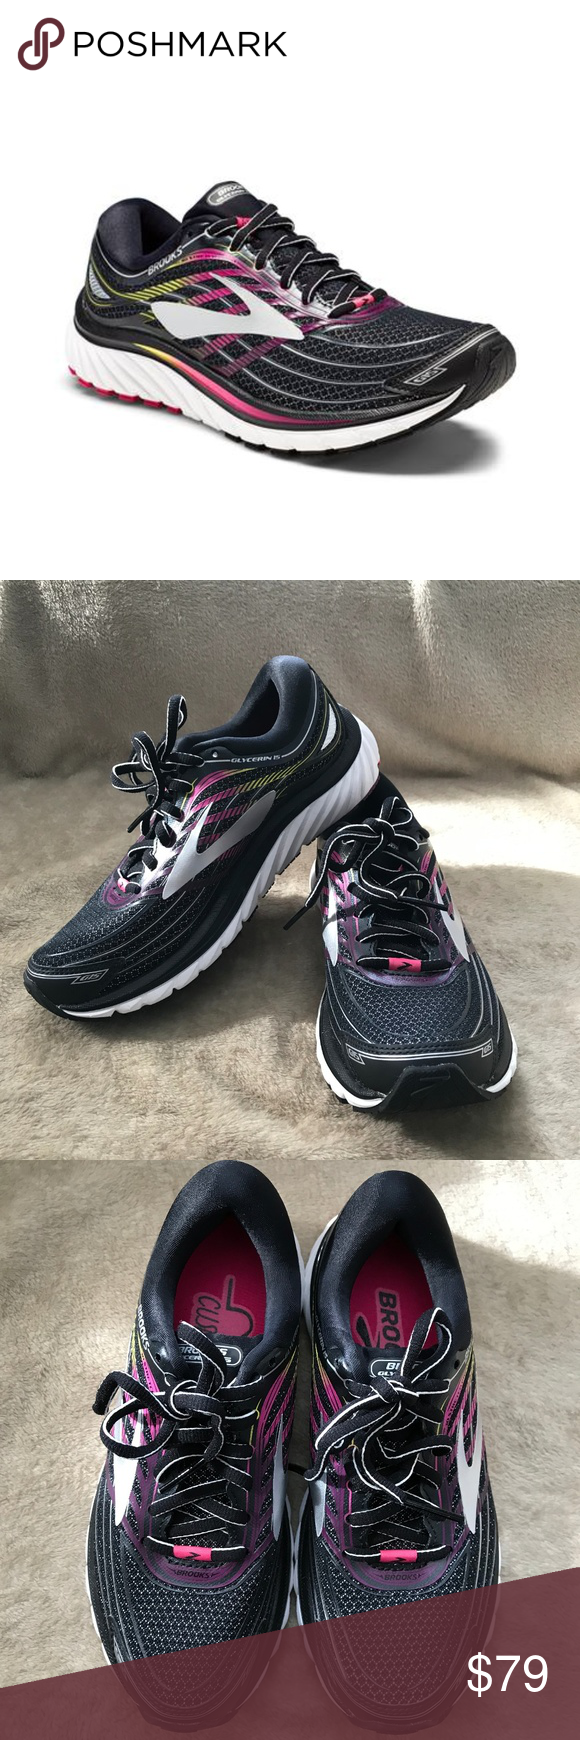 b866e48874d Women s Brooks Glycerin 15 The Brooks Glycerin 15 running shoes are a  cushioned